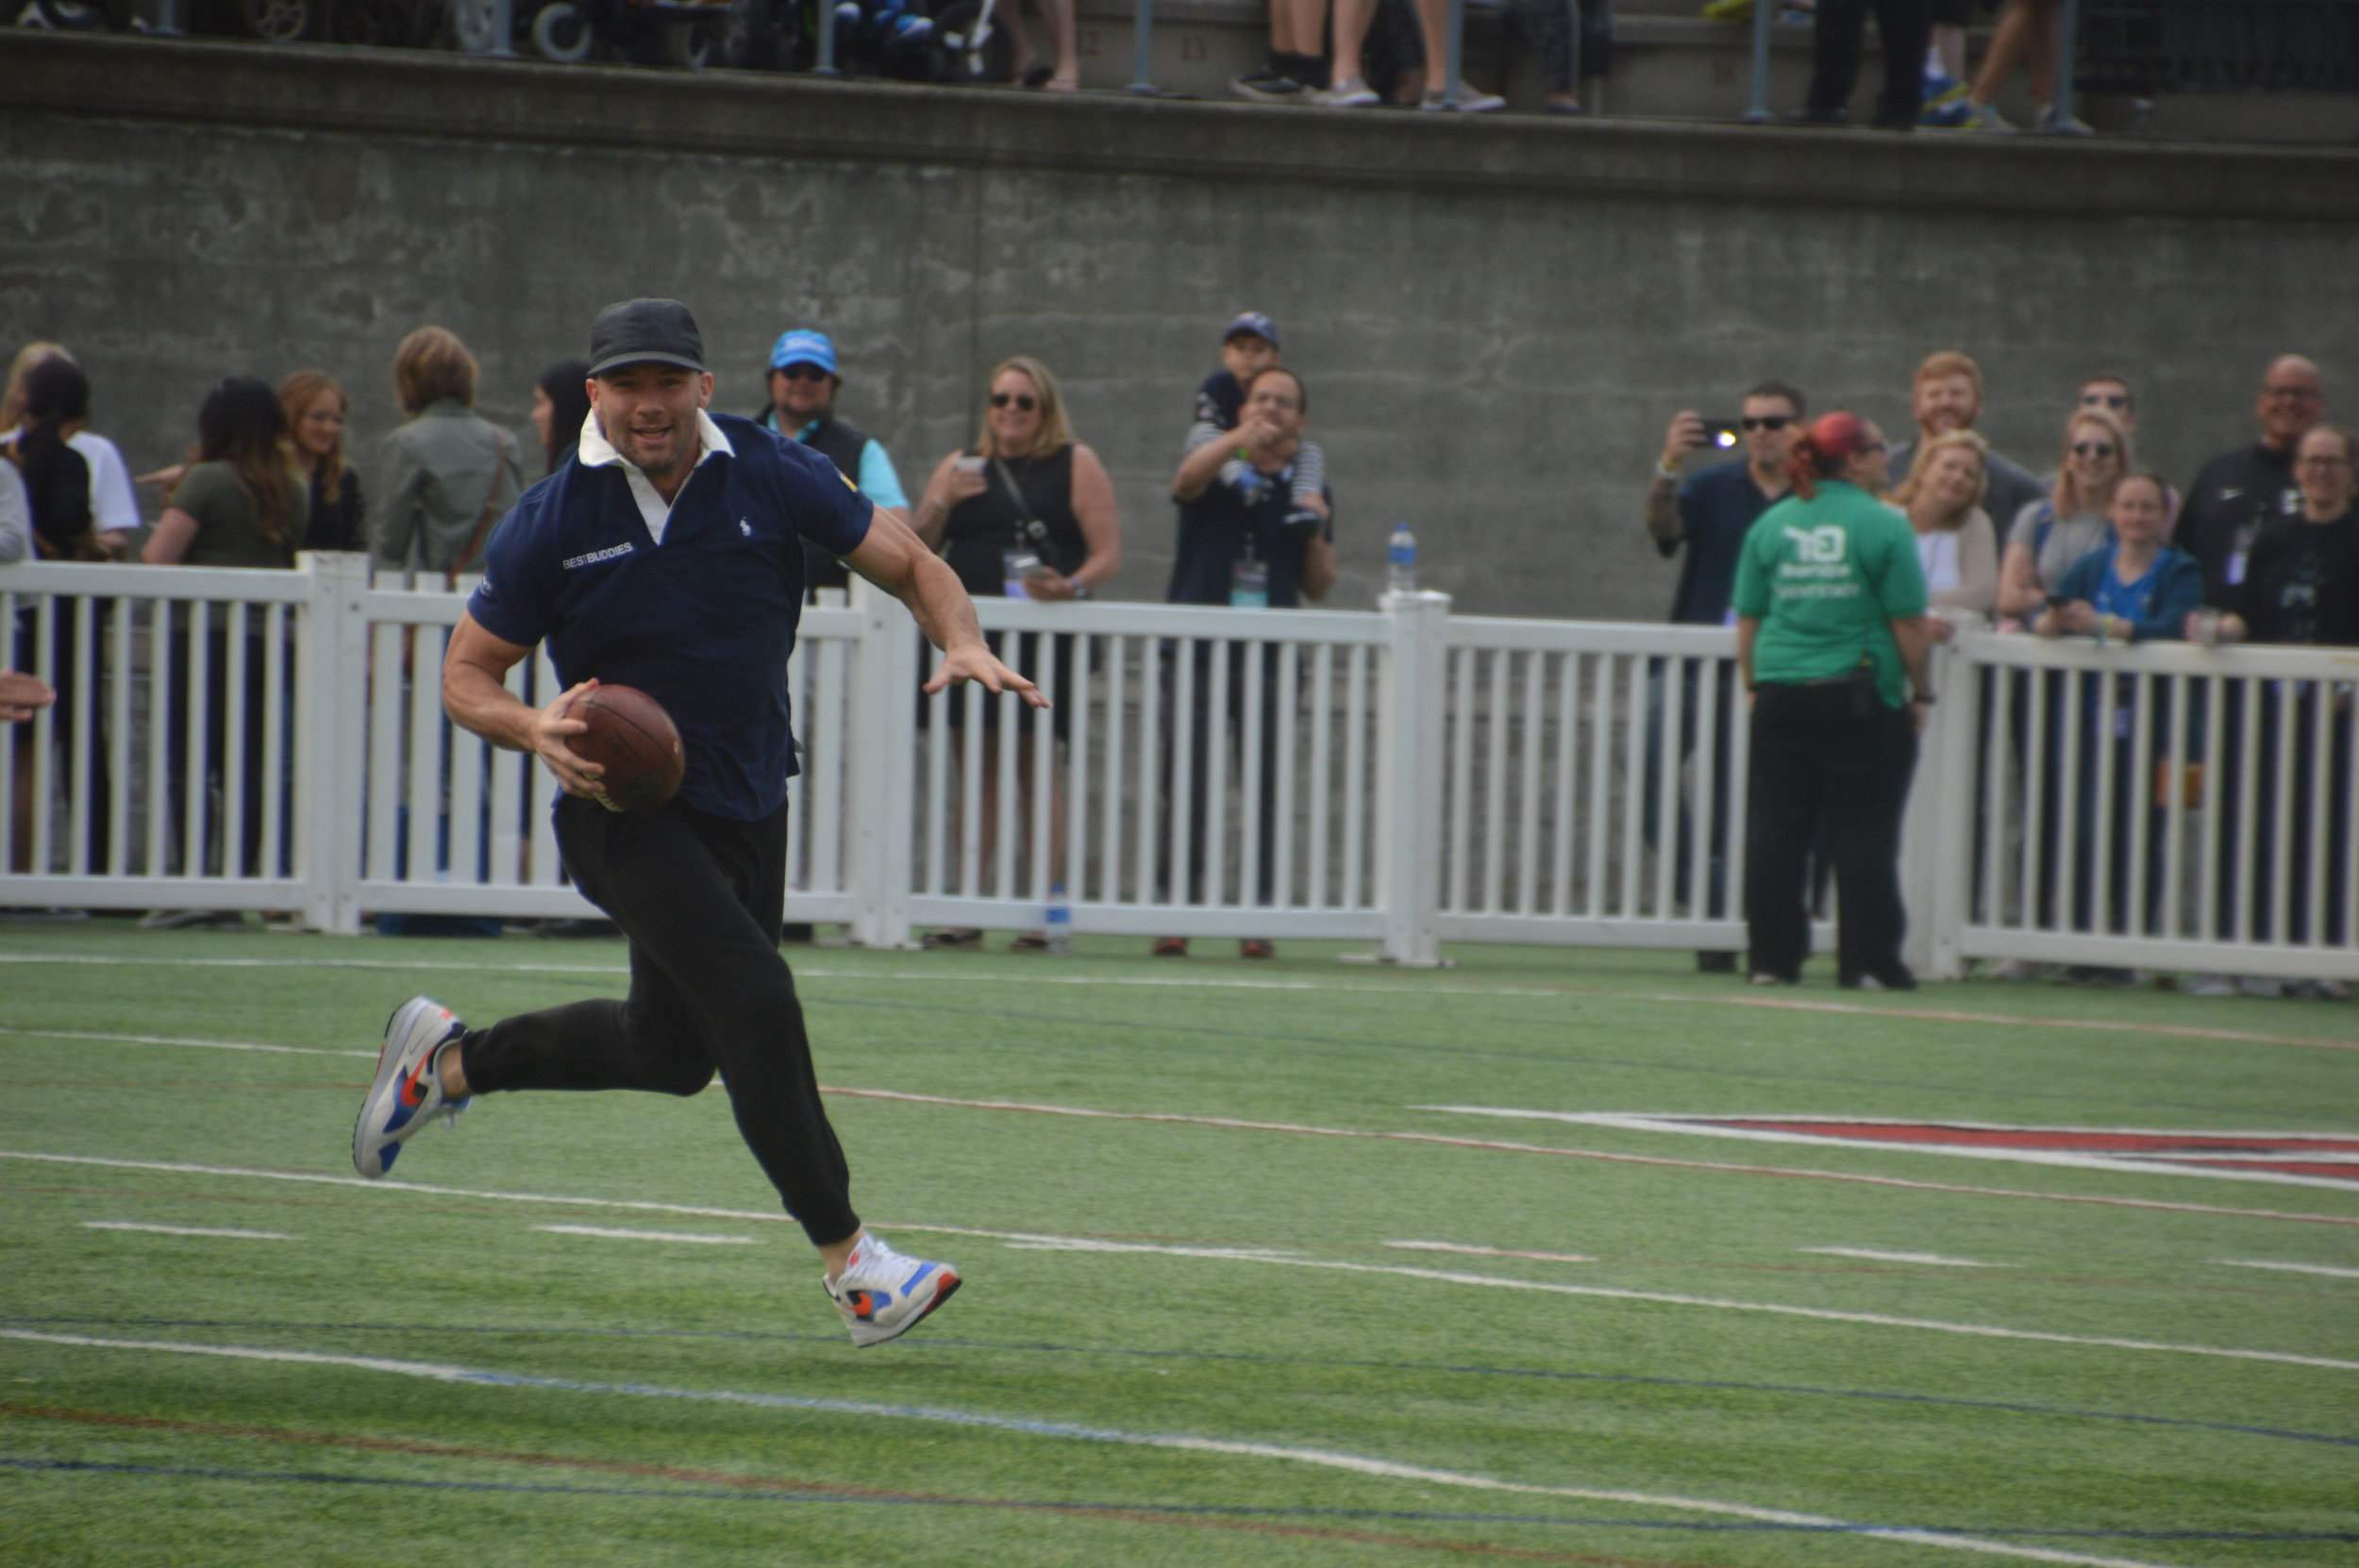 Julian Edelman runs across the field during the 20th Annual Tom Brady Best Buddies Football Challenge.